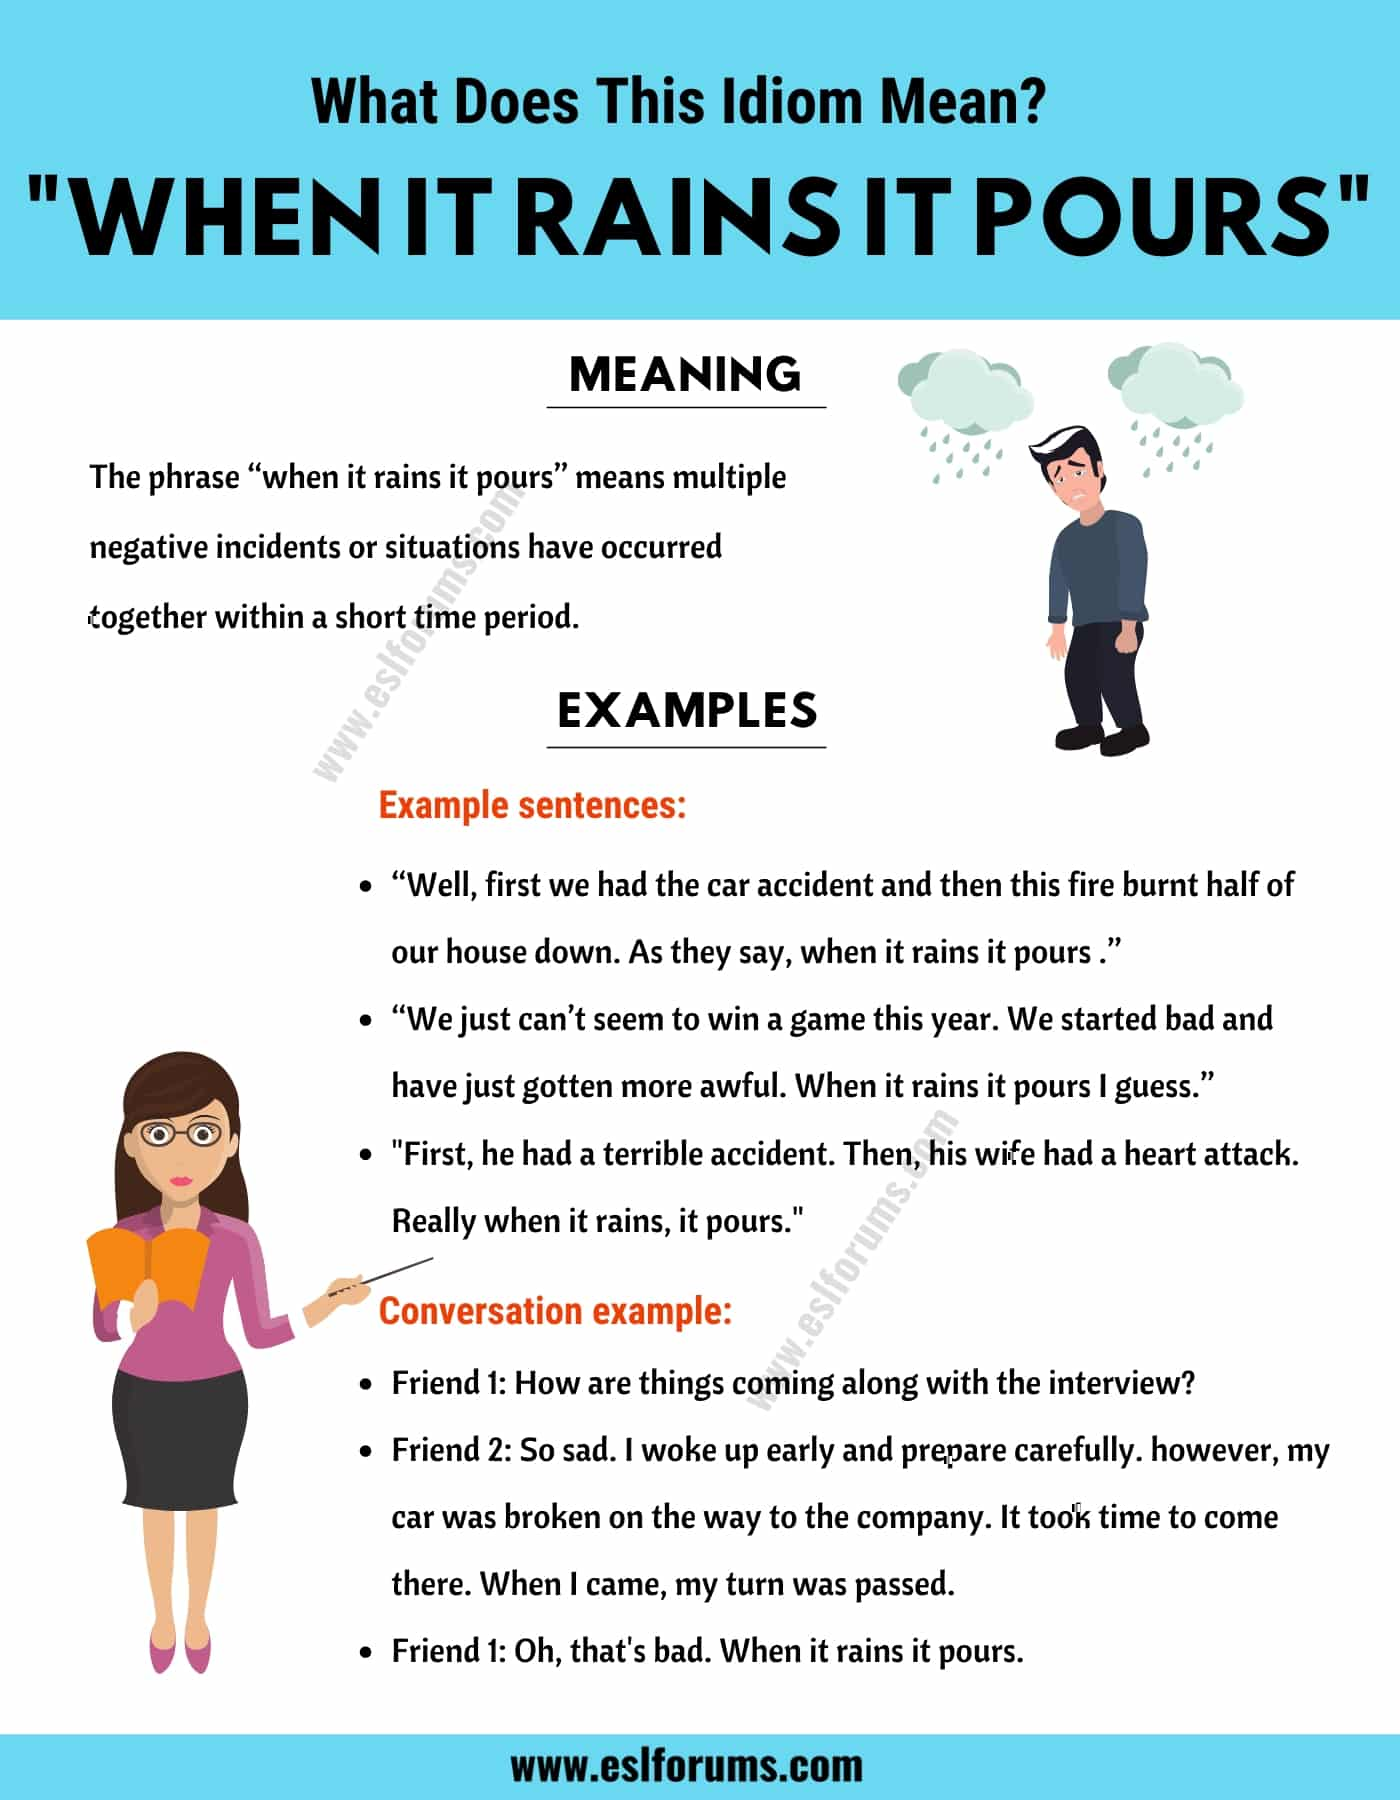 When It Rains It Pours: What Does This Popular Idiom Actually Mean?